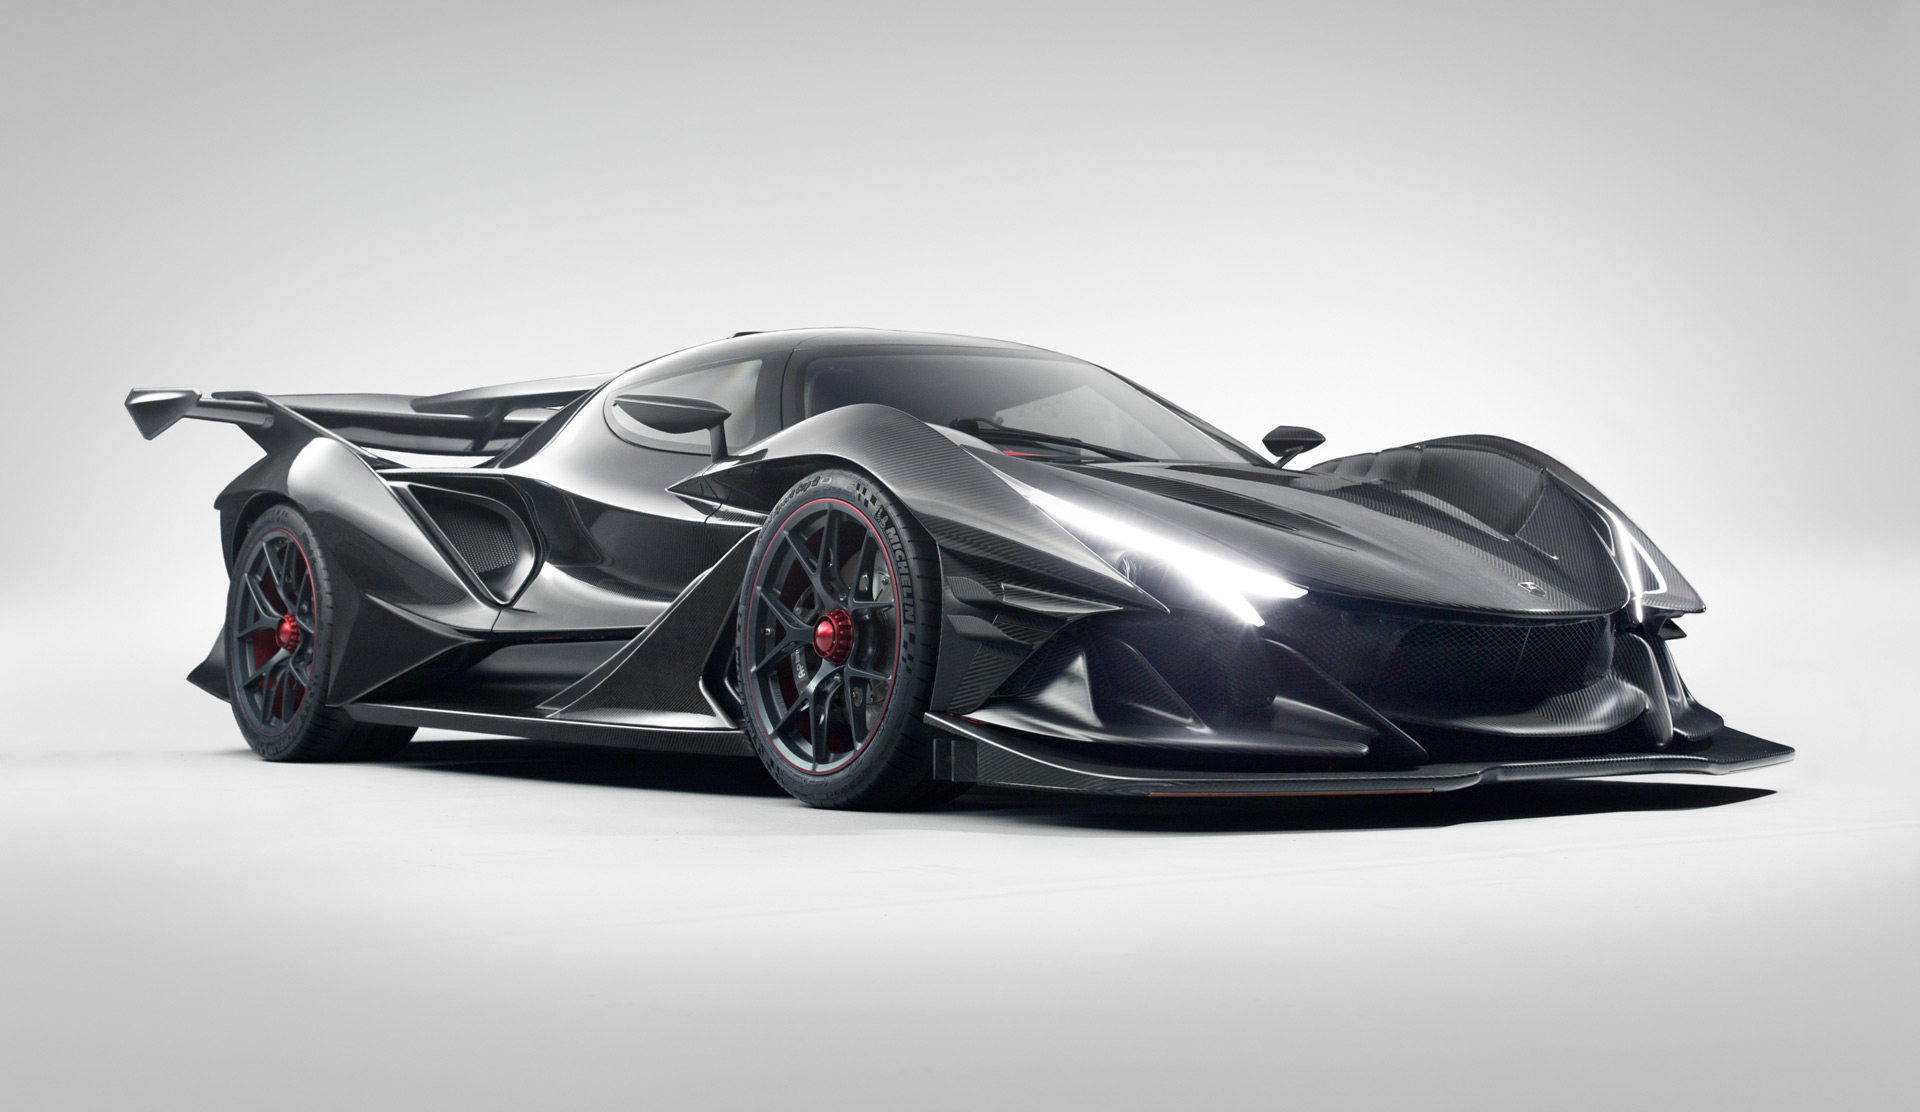 V 12 Powered Apollo Intensa Emozione Supercar Revealed